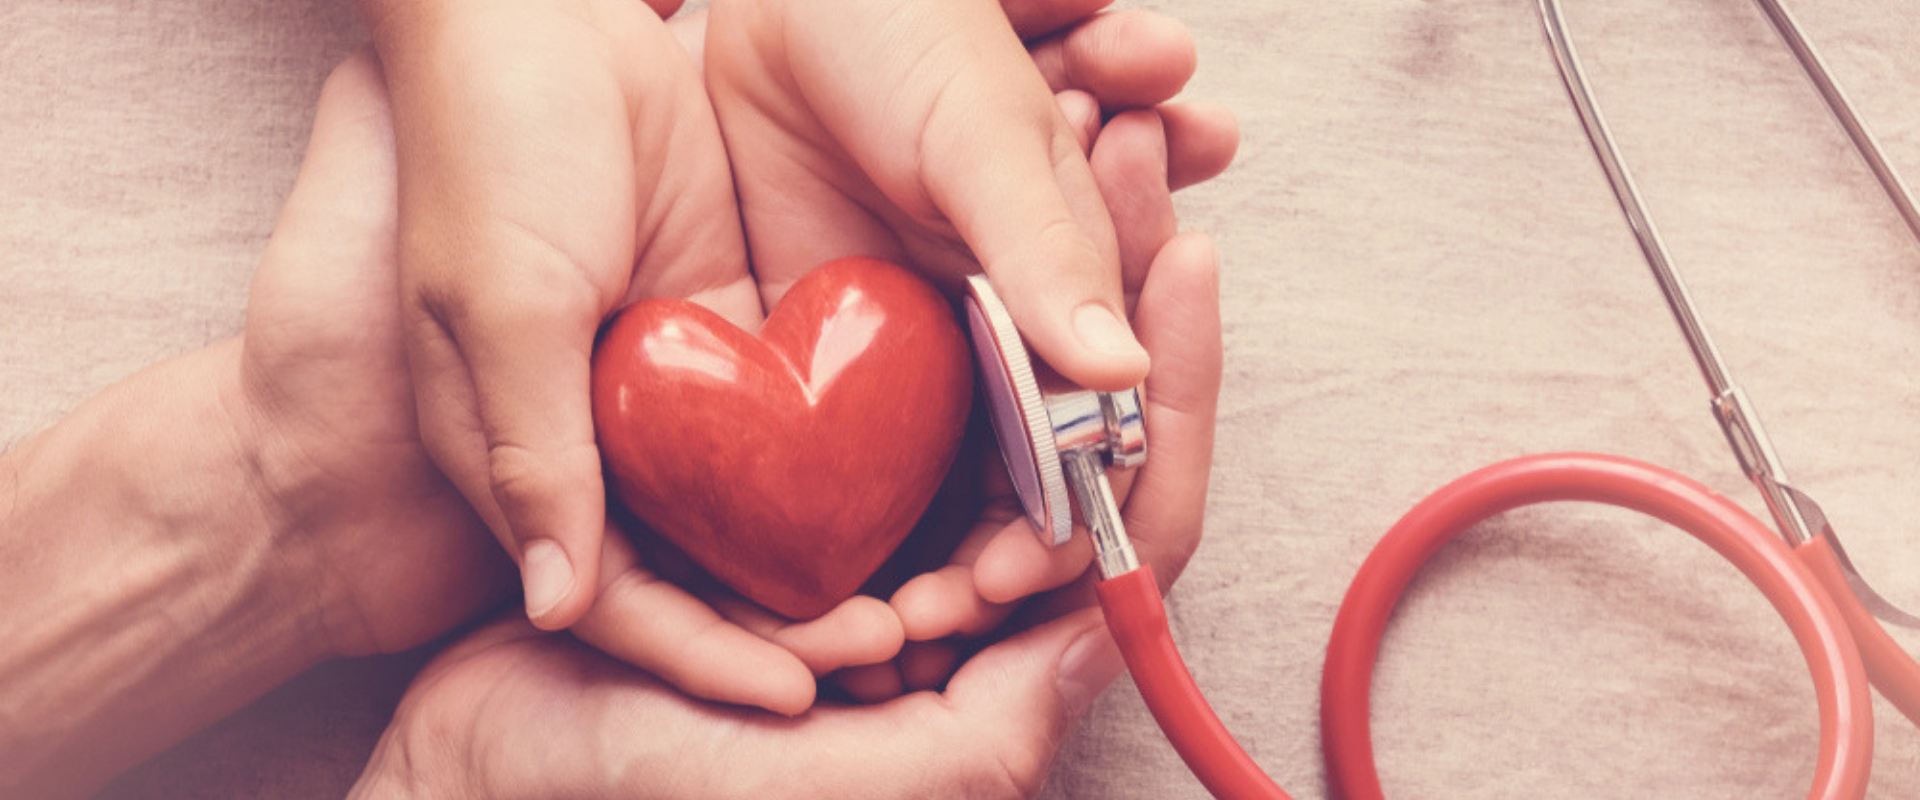 Guide to Hypertension | How to Lower Your Blood Pressure